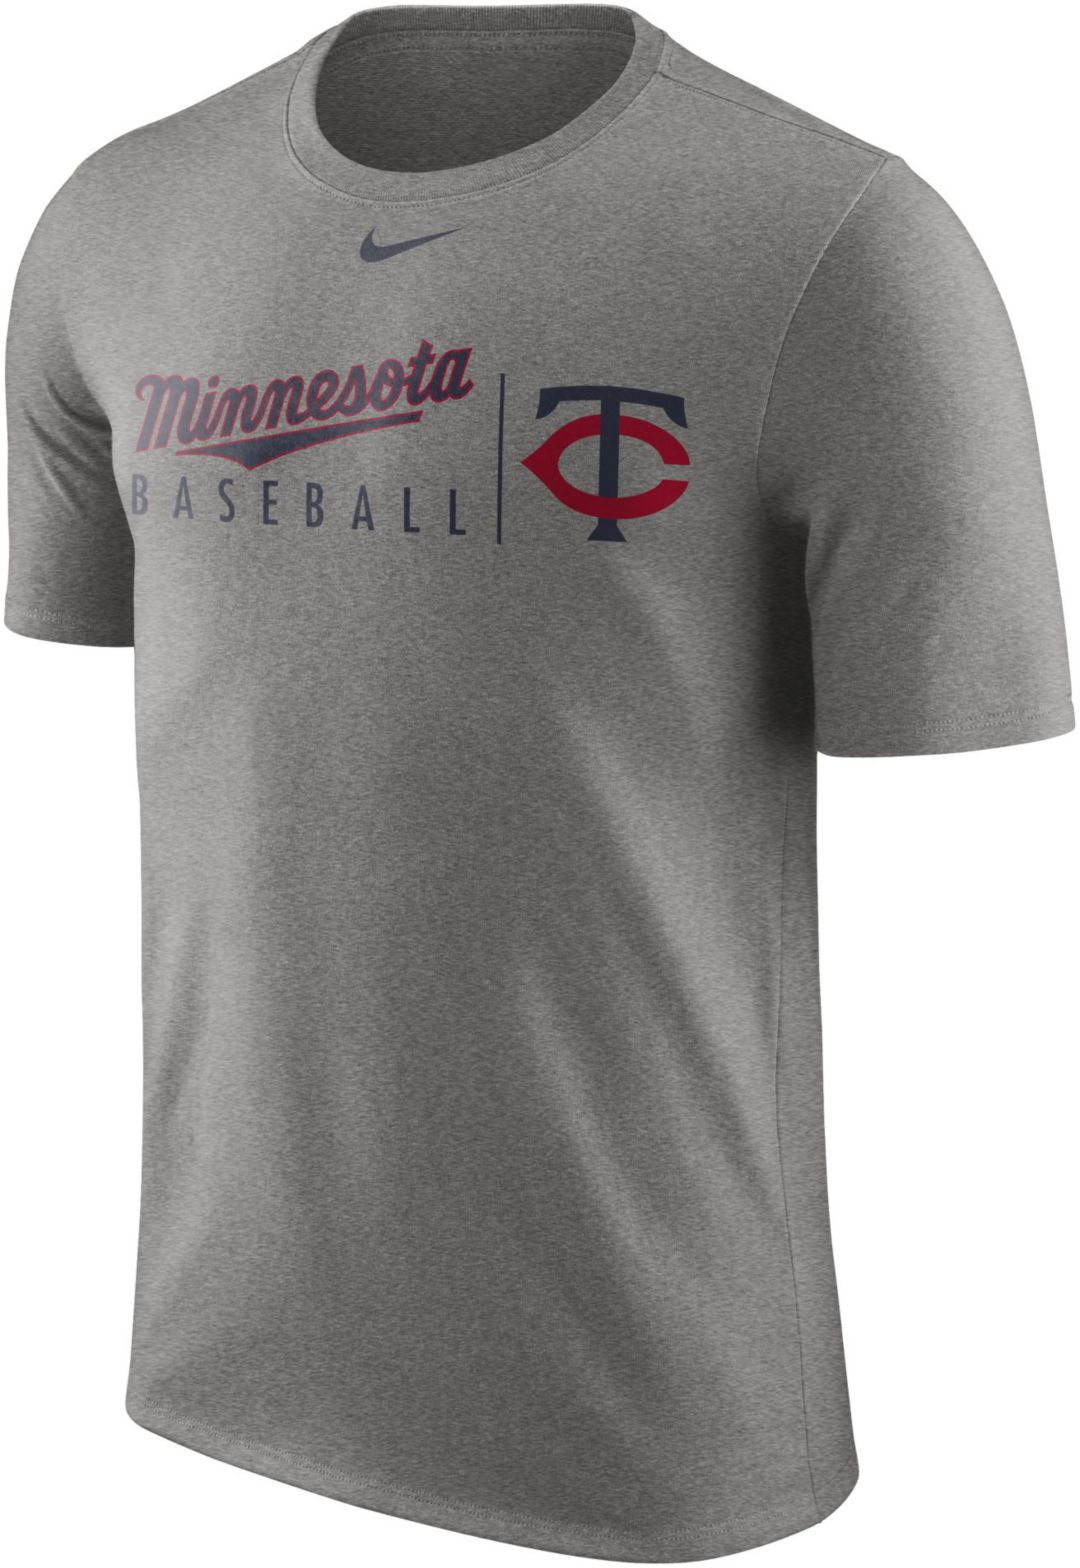 separation shoes 0b089 bd820 Nike Men s Minnesota Twins Practice T-Shirt 1